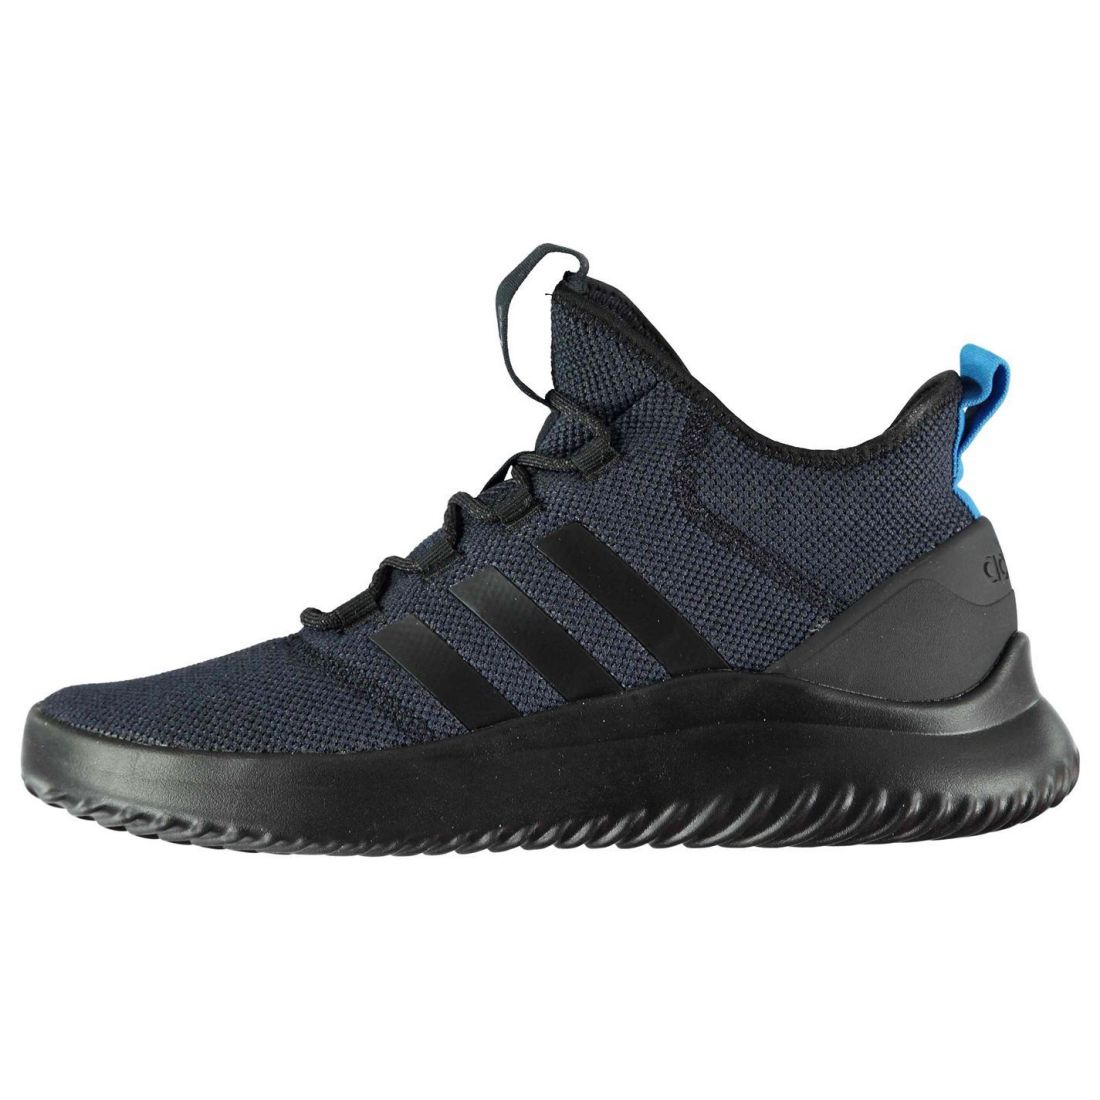 c6a3b6207c1 adidas Cloudfoam Ultimate B Ball Sneakers Mens Gents Runners Laces Fastened  Knit 2 2 sur 4 ...